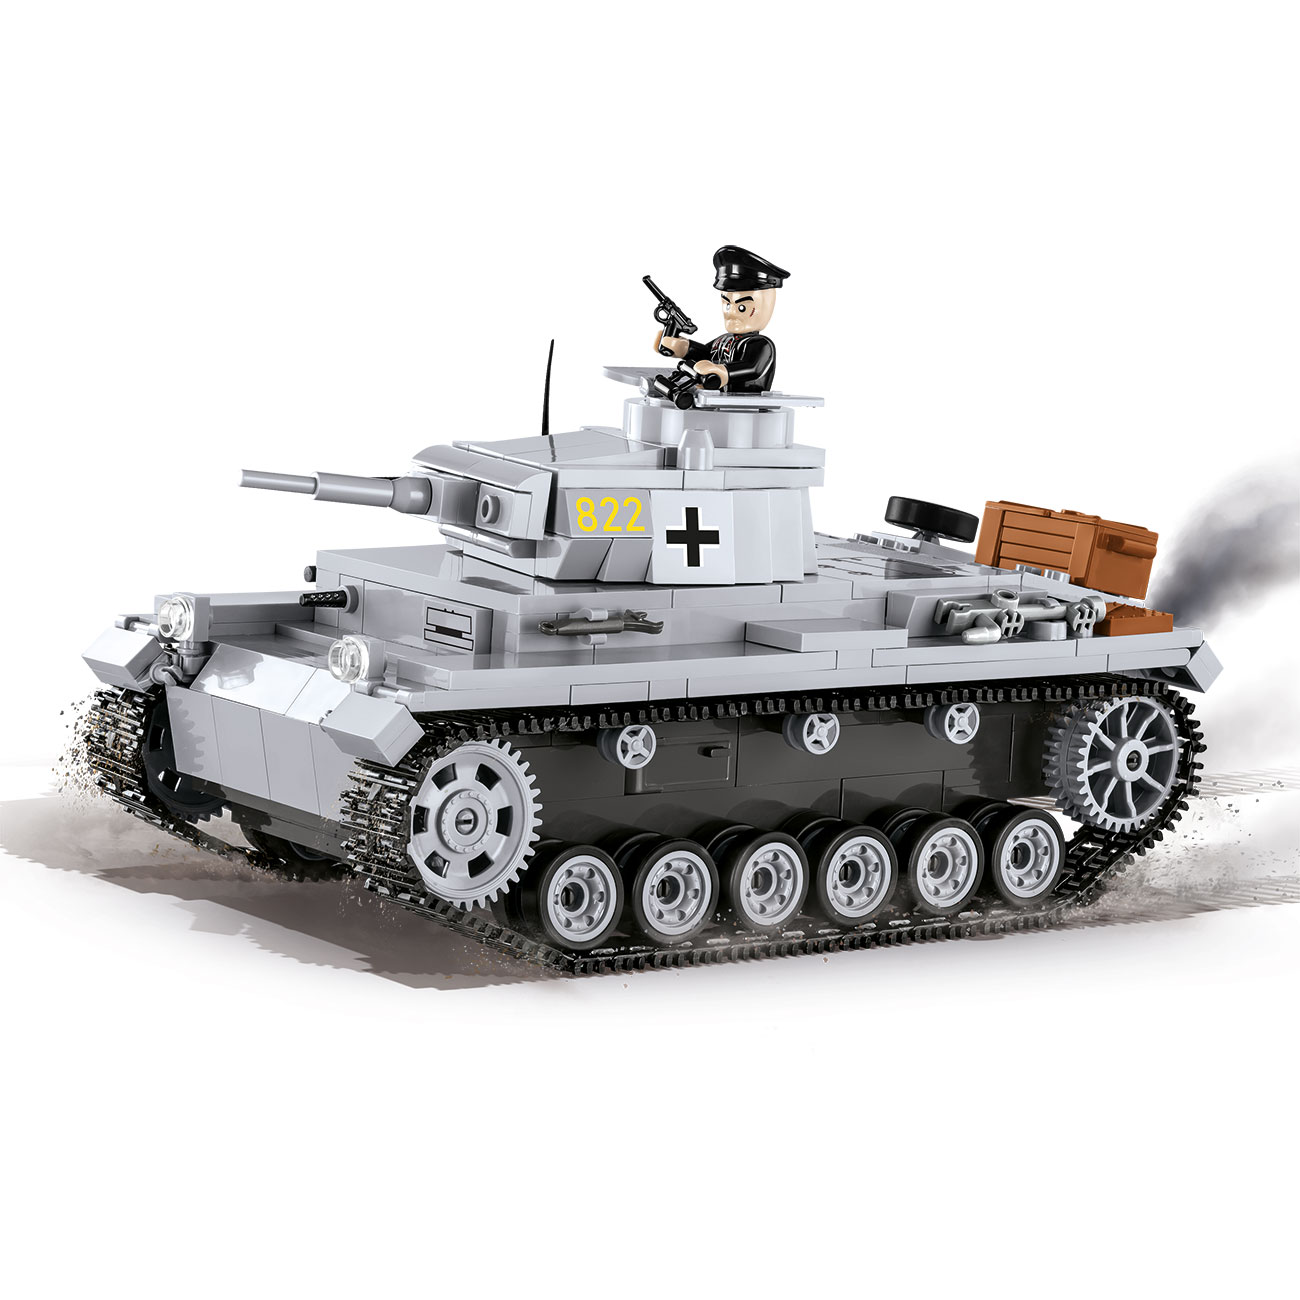 Cobi Historical Collection Bausatz Panzer III Ausf. E 470 Teile 2523 0